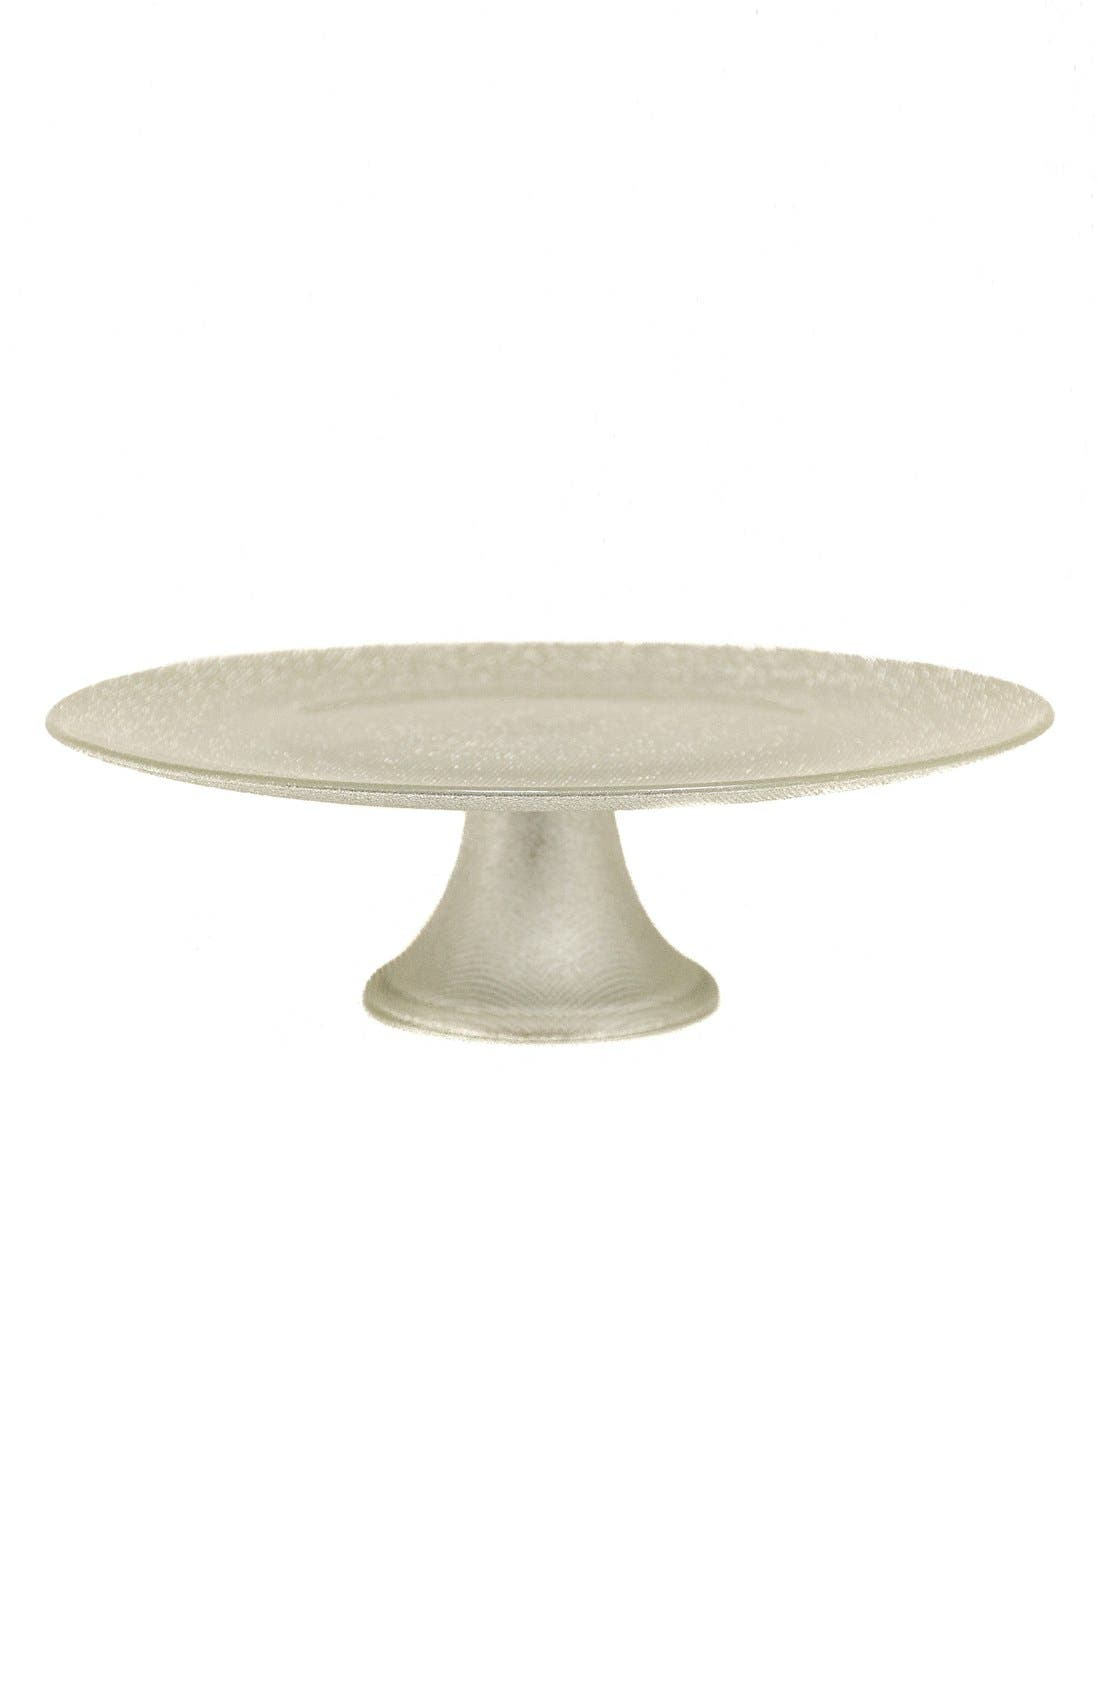 Footed Cake Stand,                             Main thumbnail 1, color,                             040